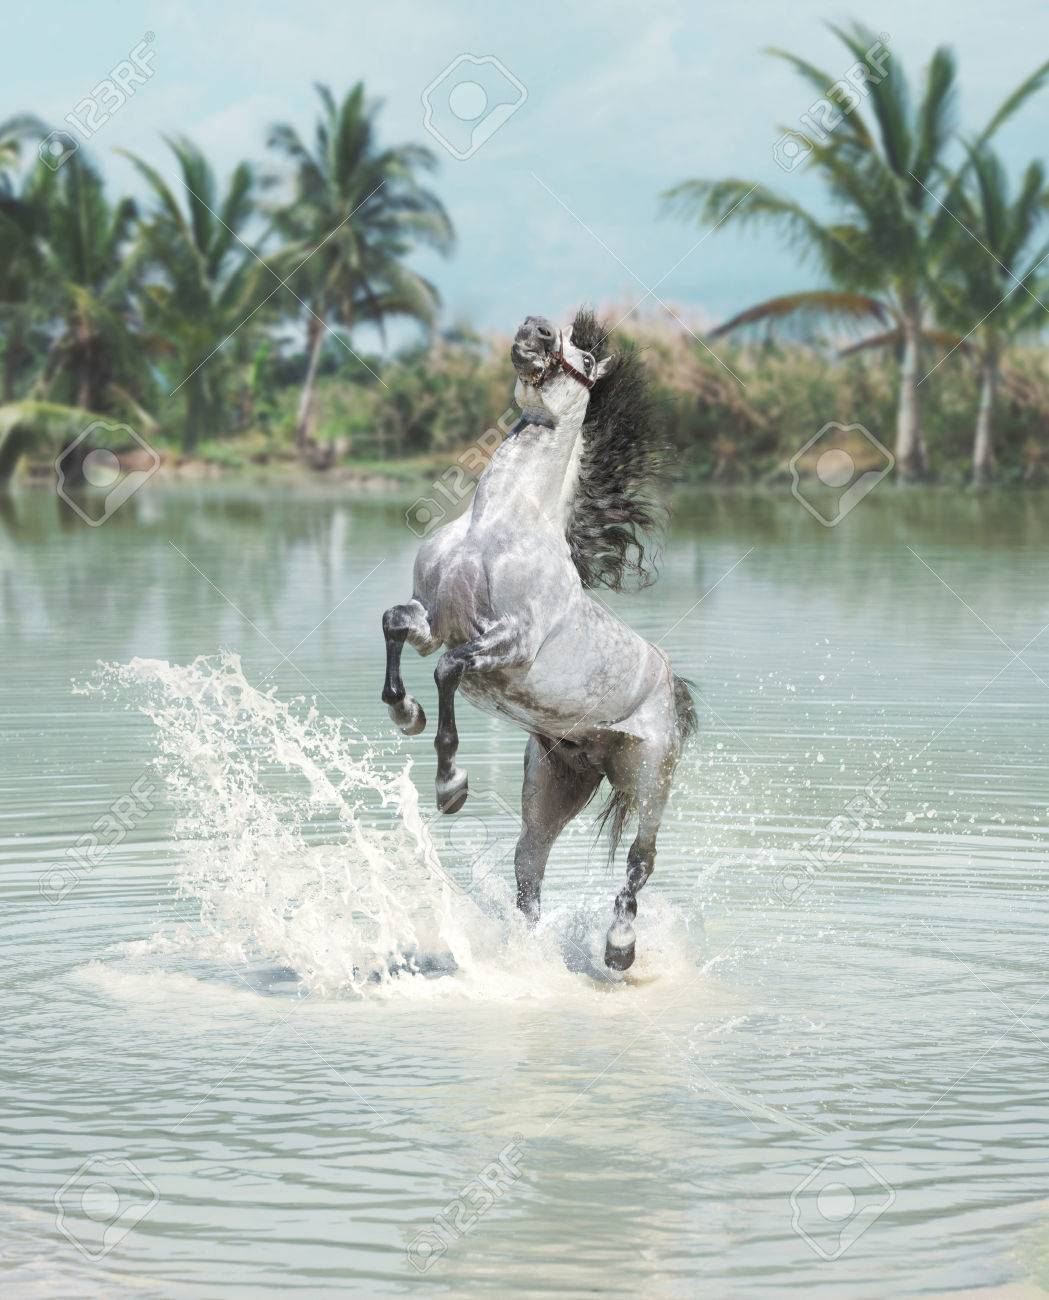 White Horse Jumping In The Vast Pond Stock Photo Picture And Royalty Free Image Image 29748300